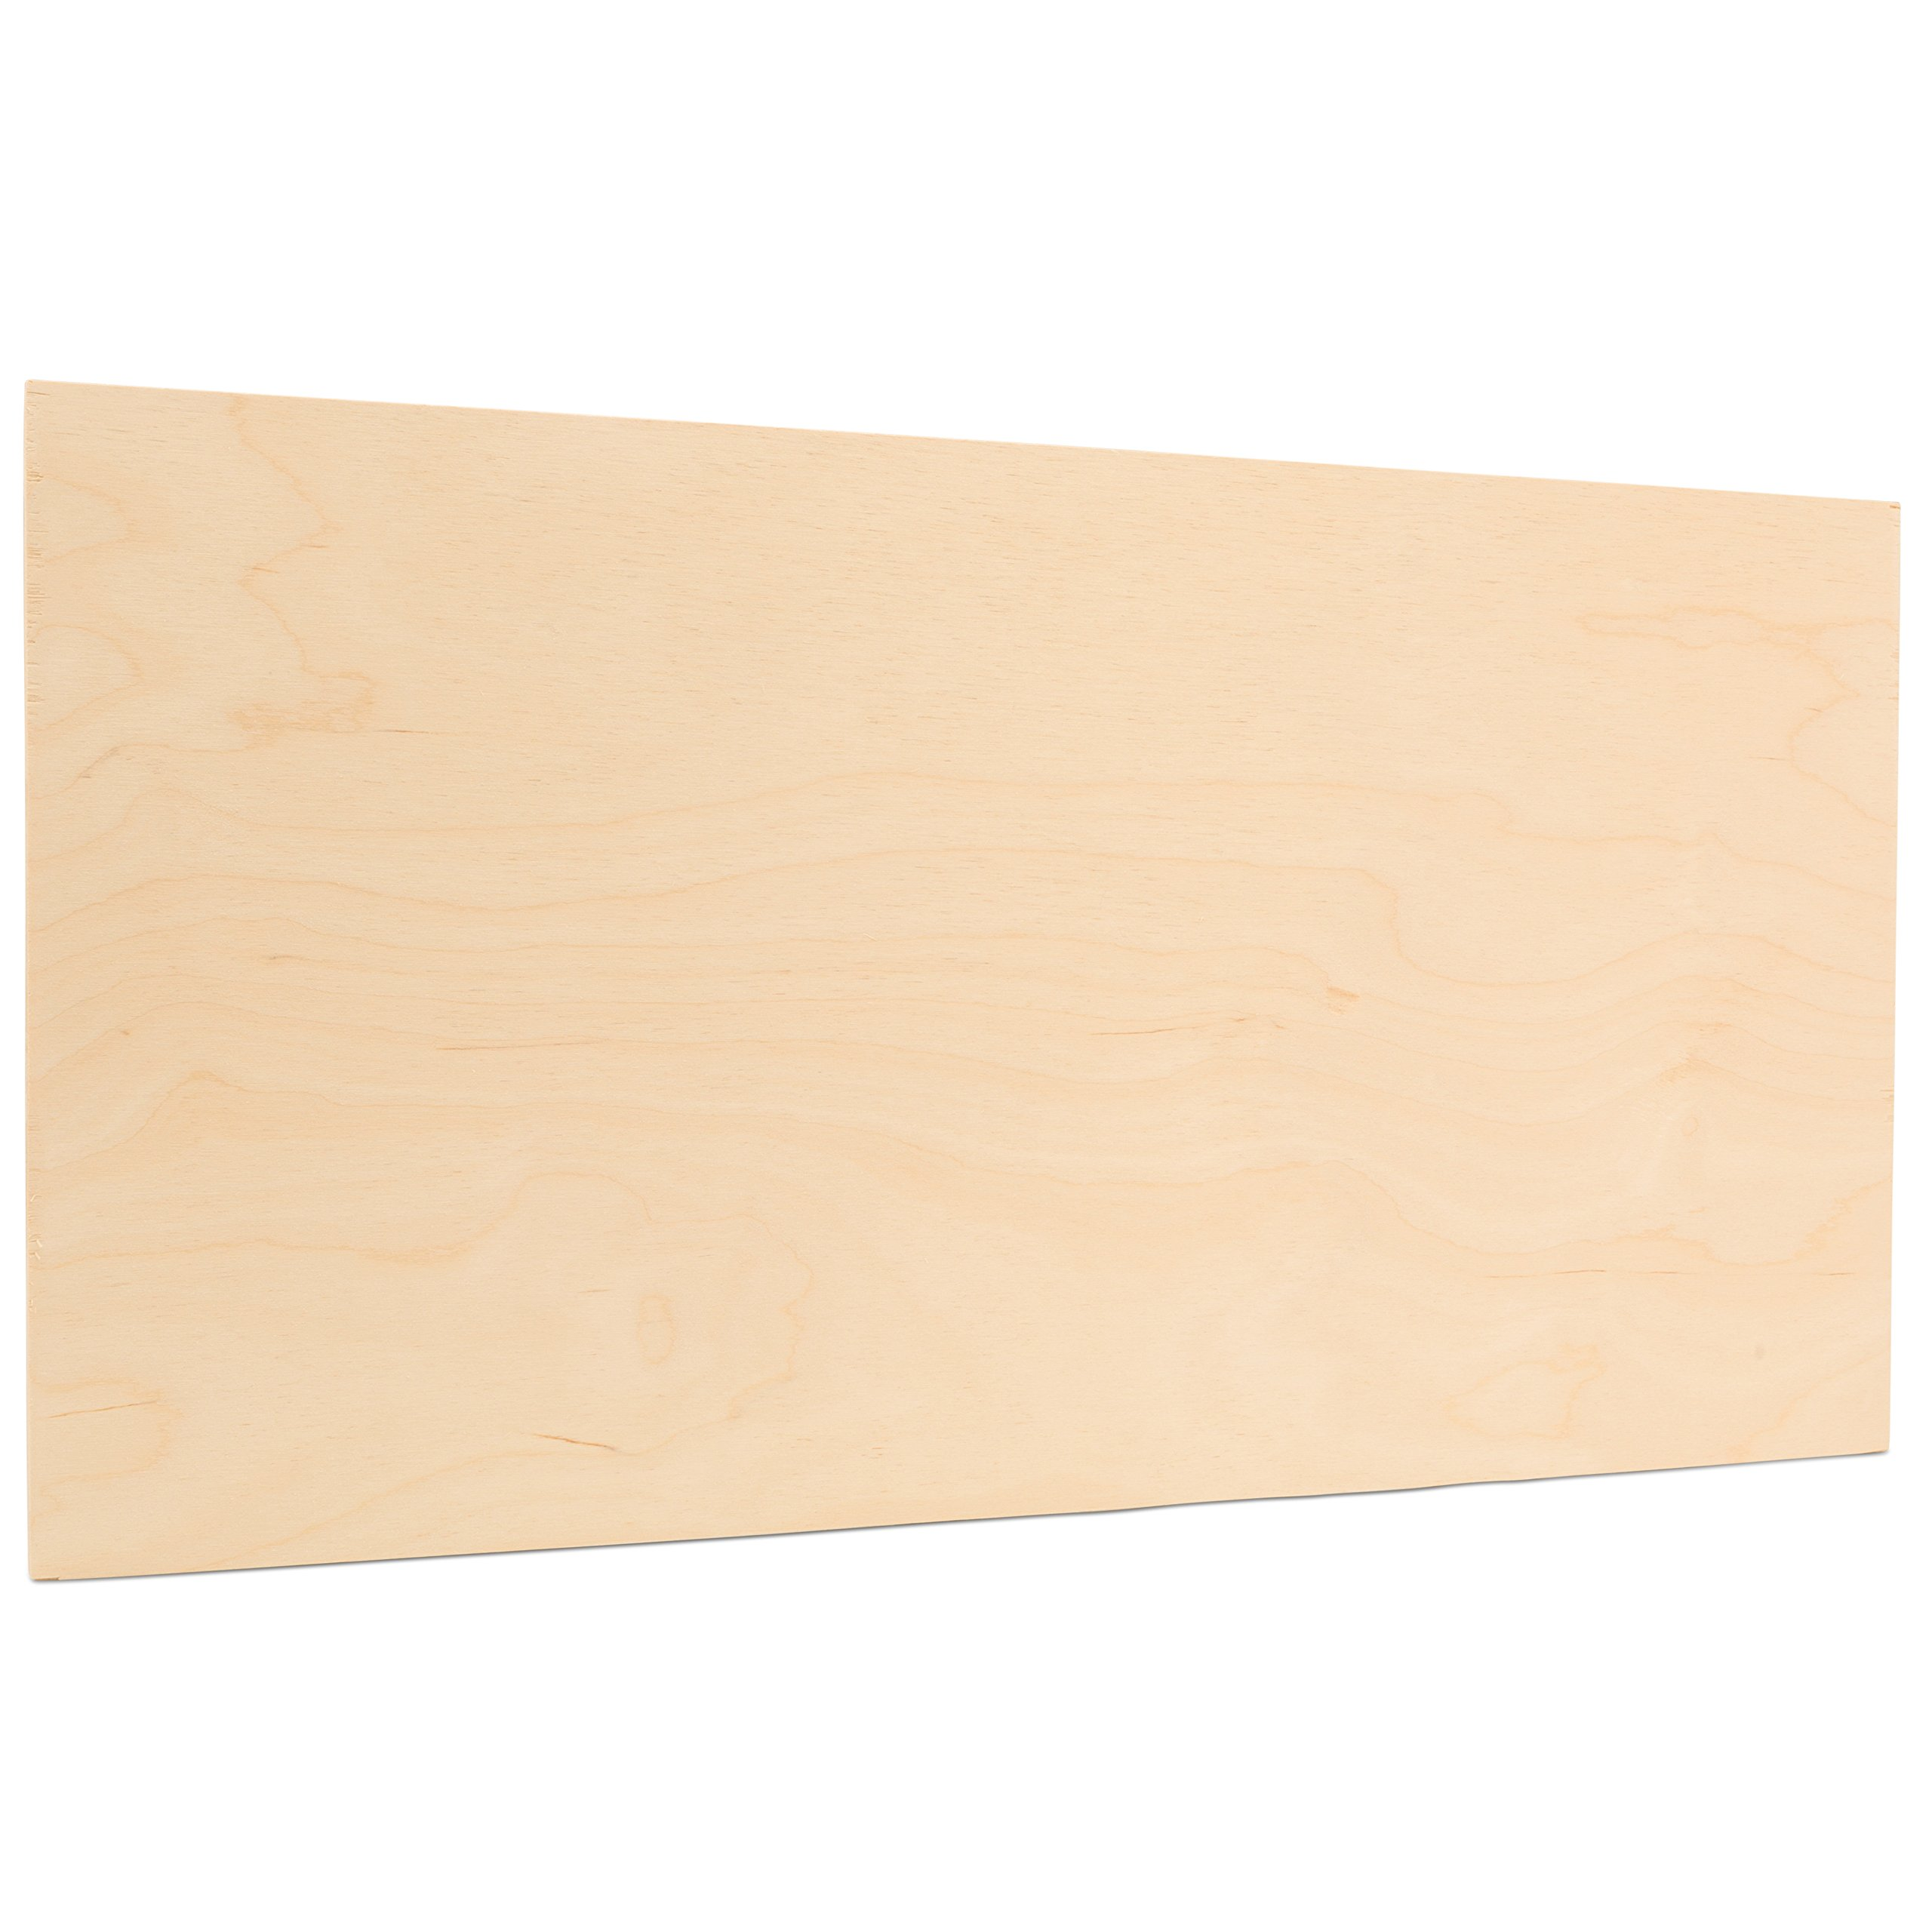 3 mm 1/8''x 12''x 24'' Premium Baltic Birch Plywood B/BB Grade - 20 Flat Sheets By Woodpeckers by Woodpeckers